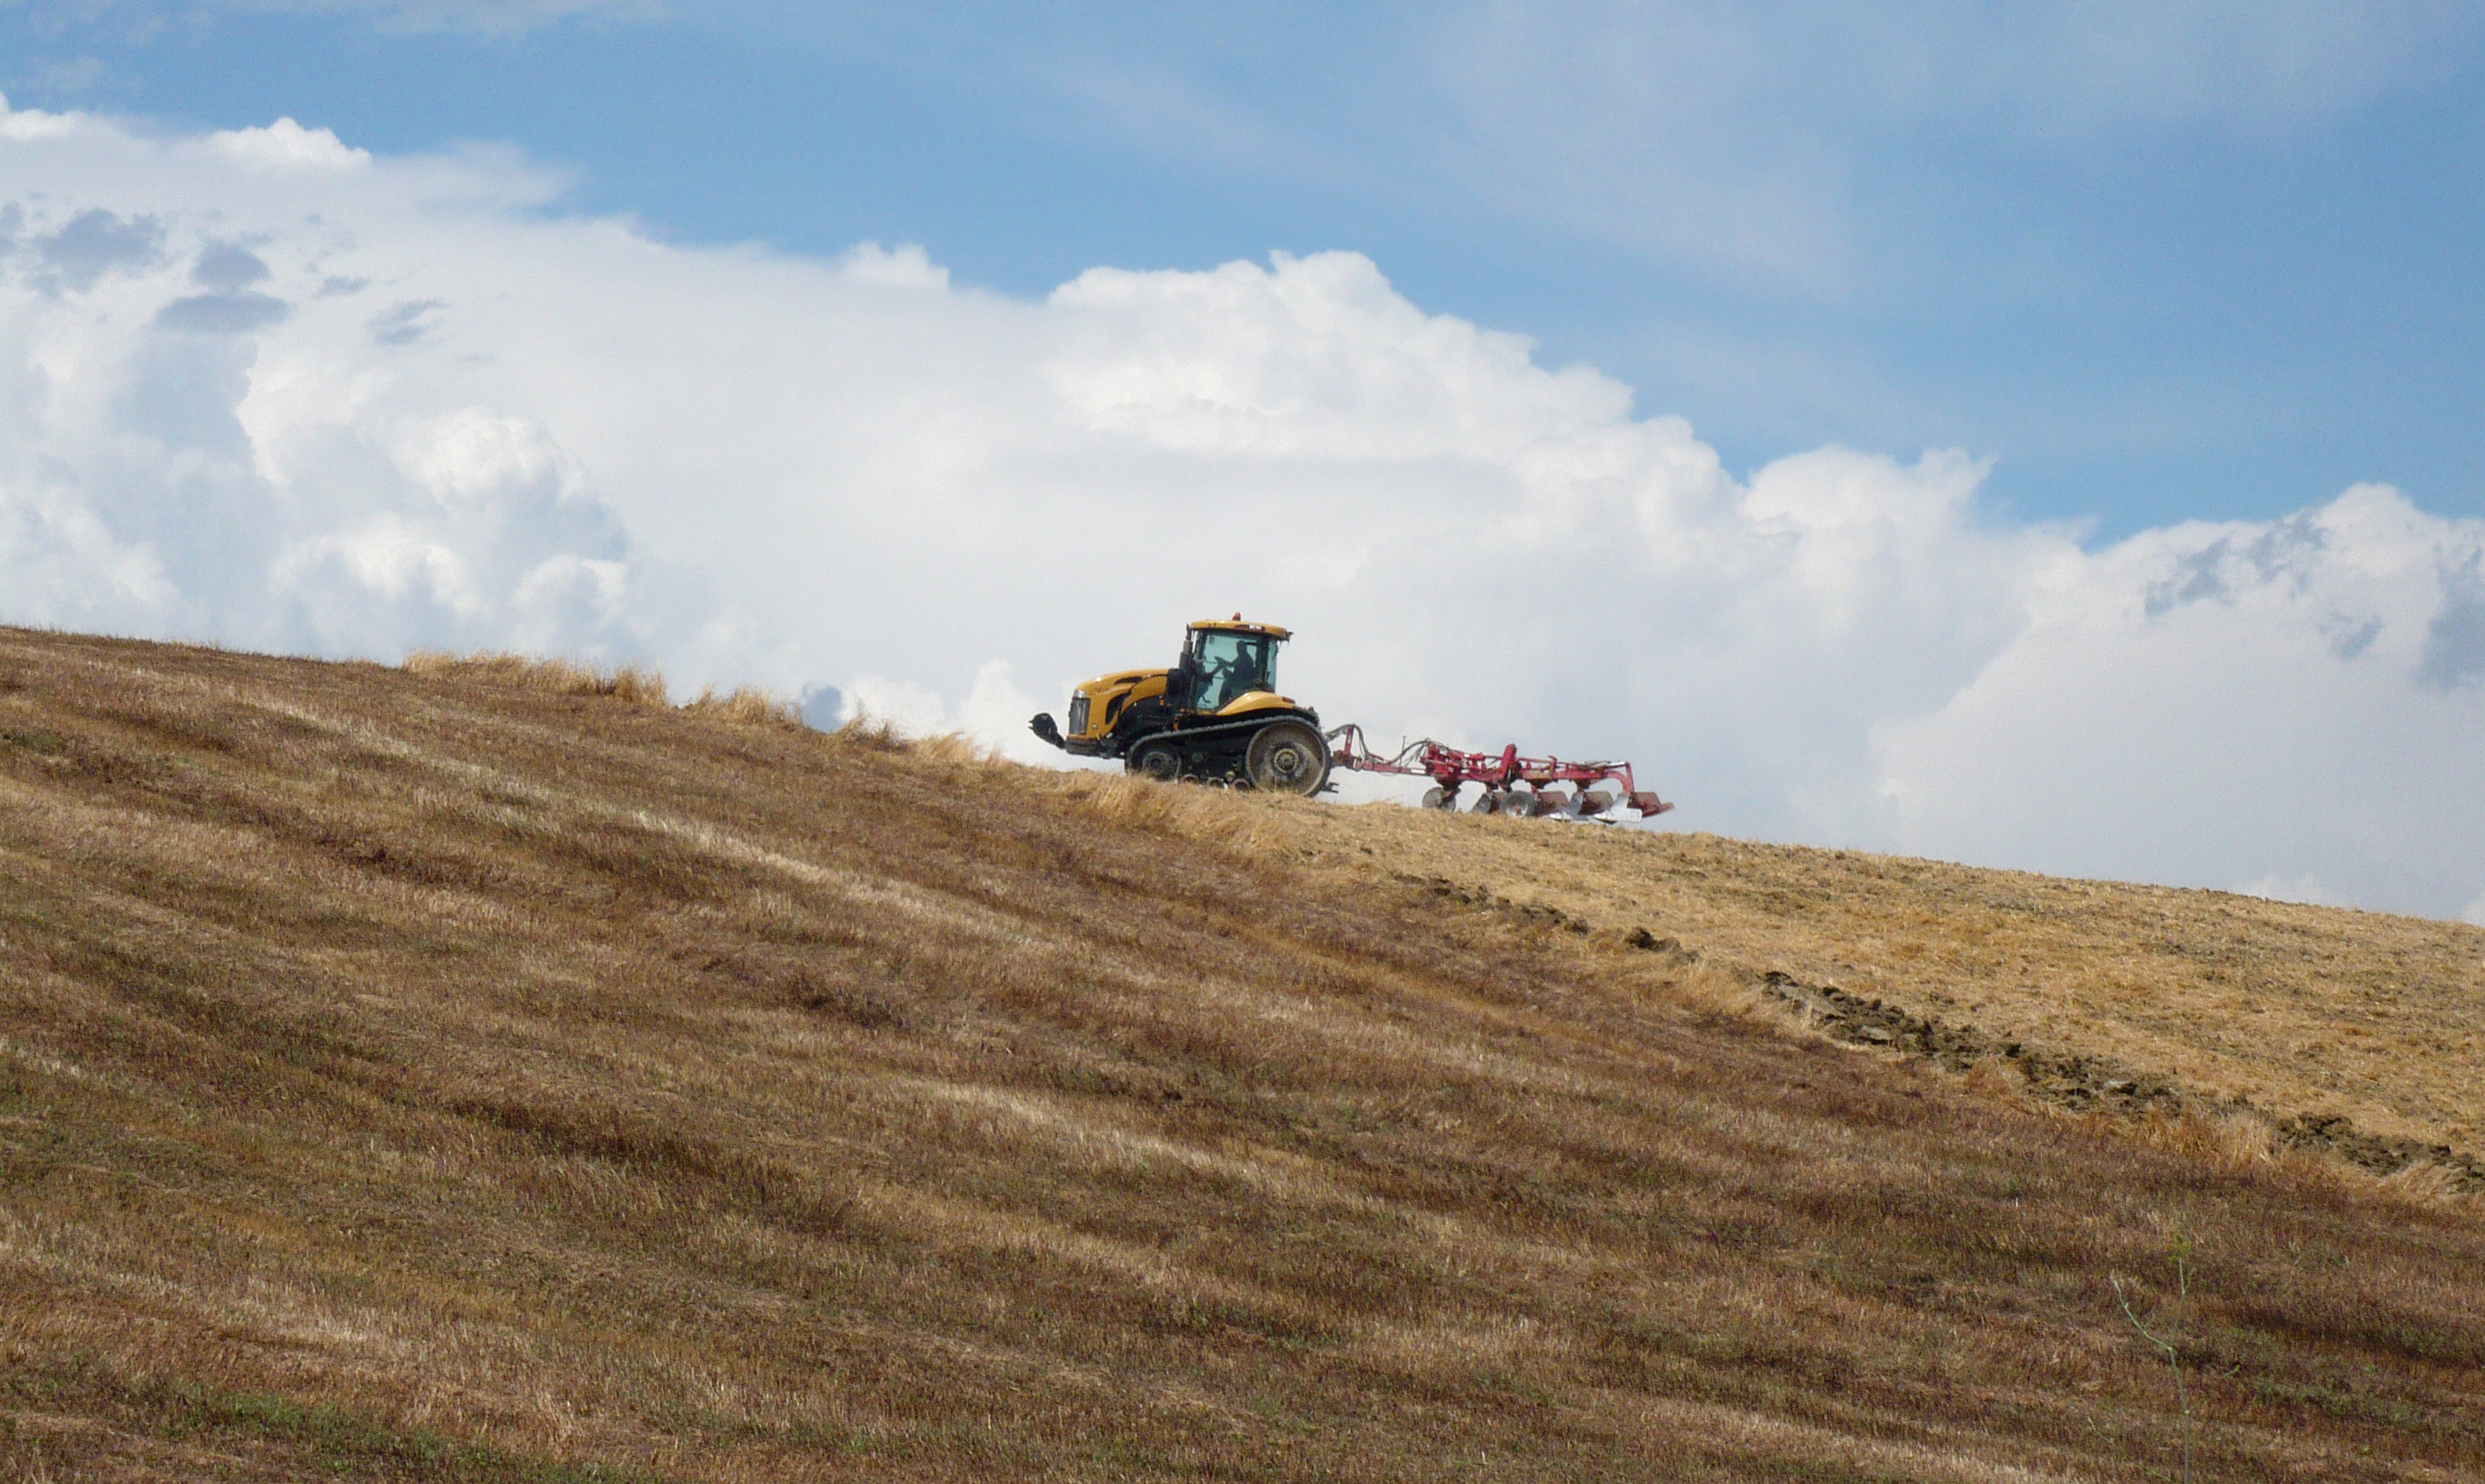 A tractor and a plow on a brown field.